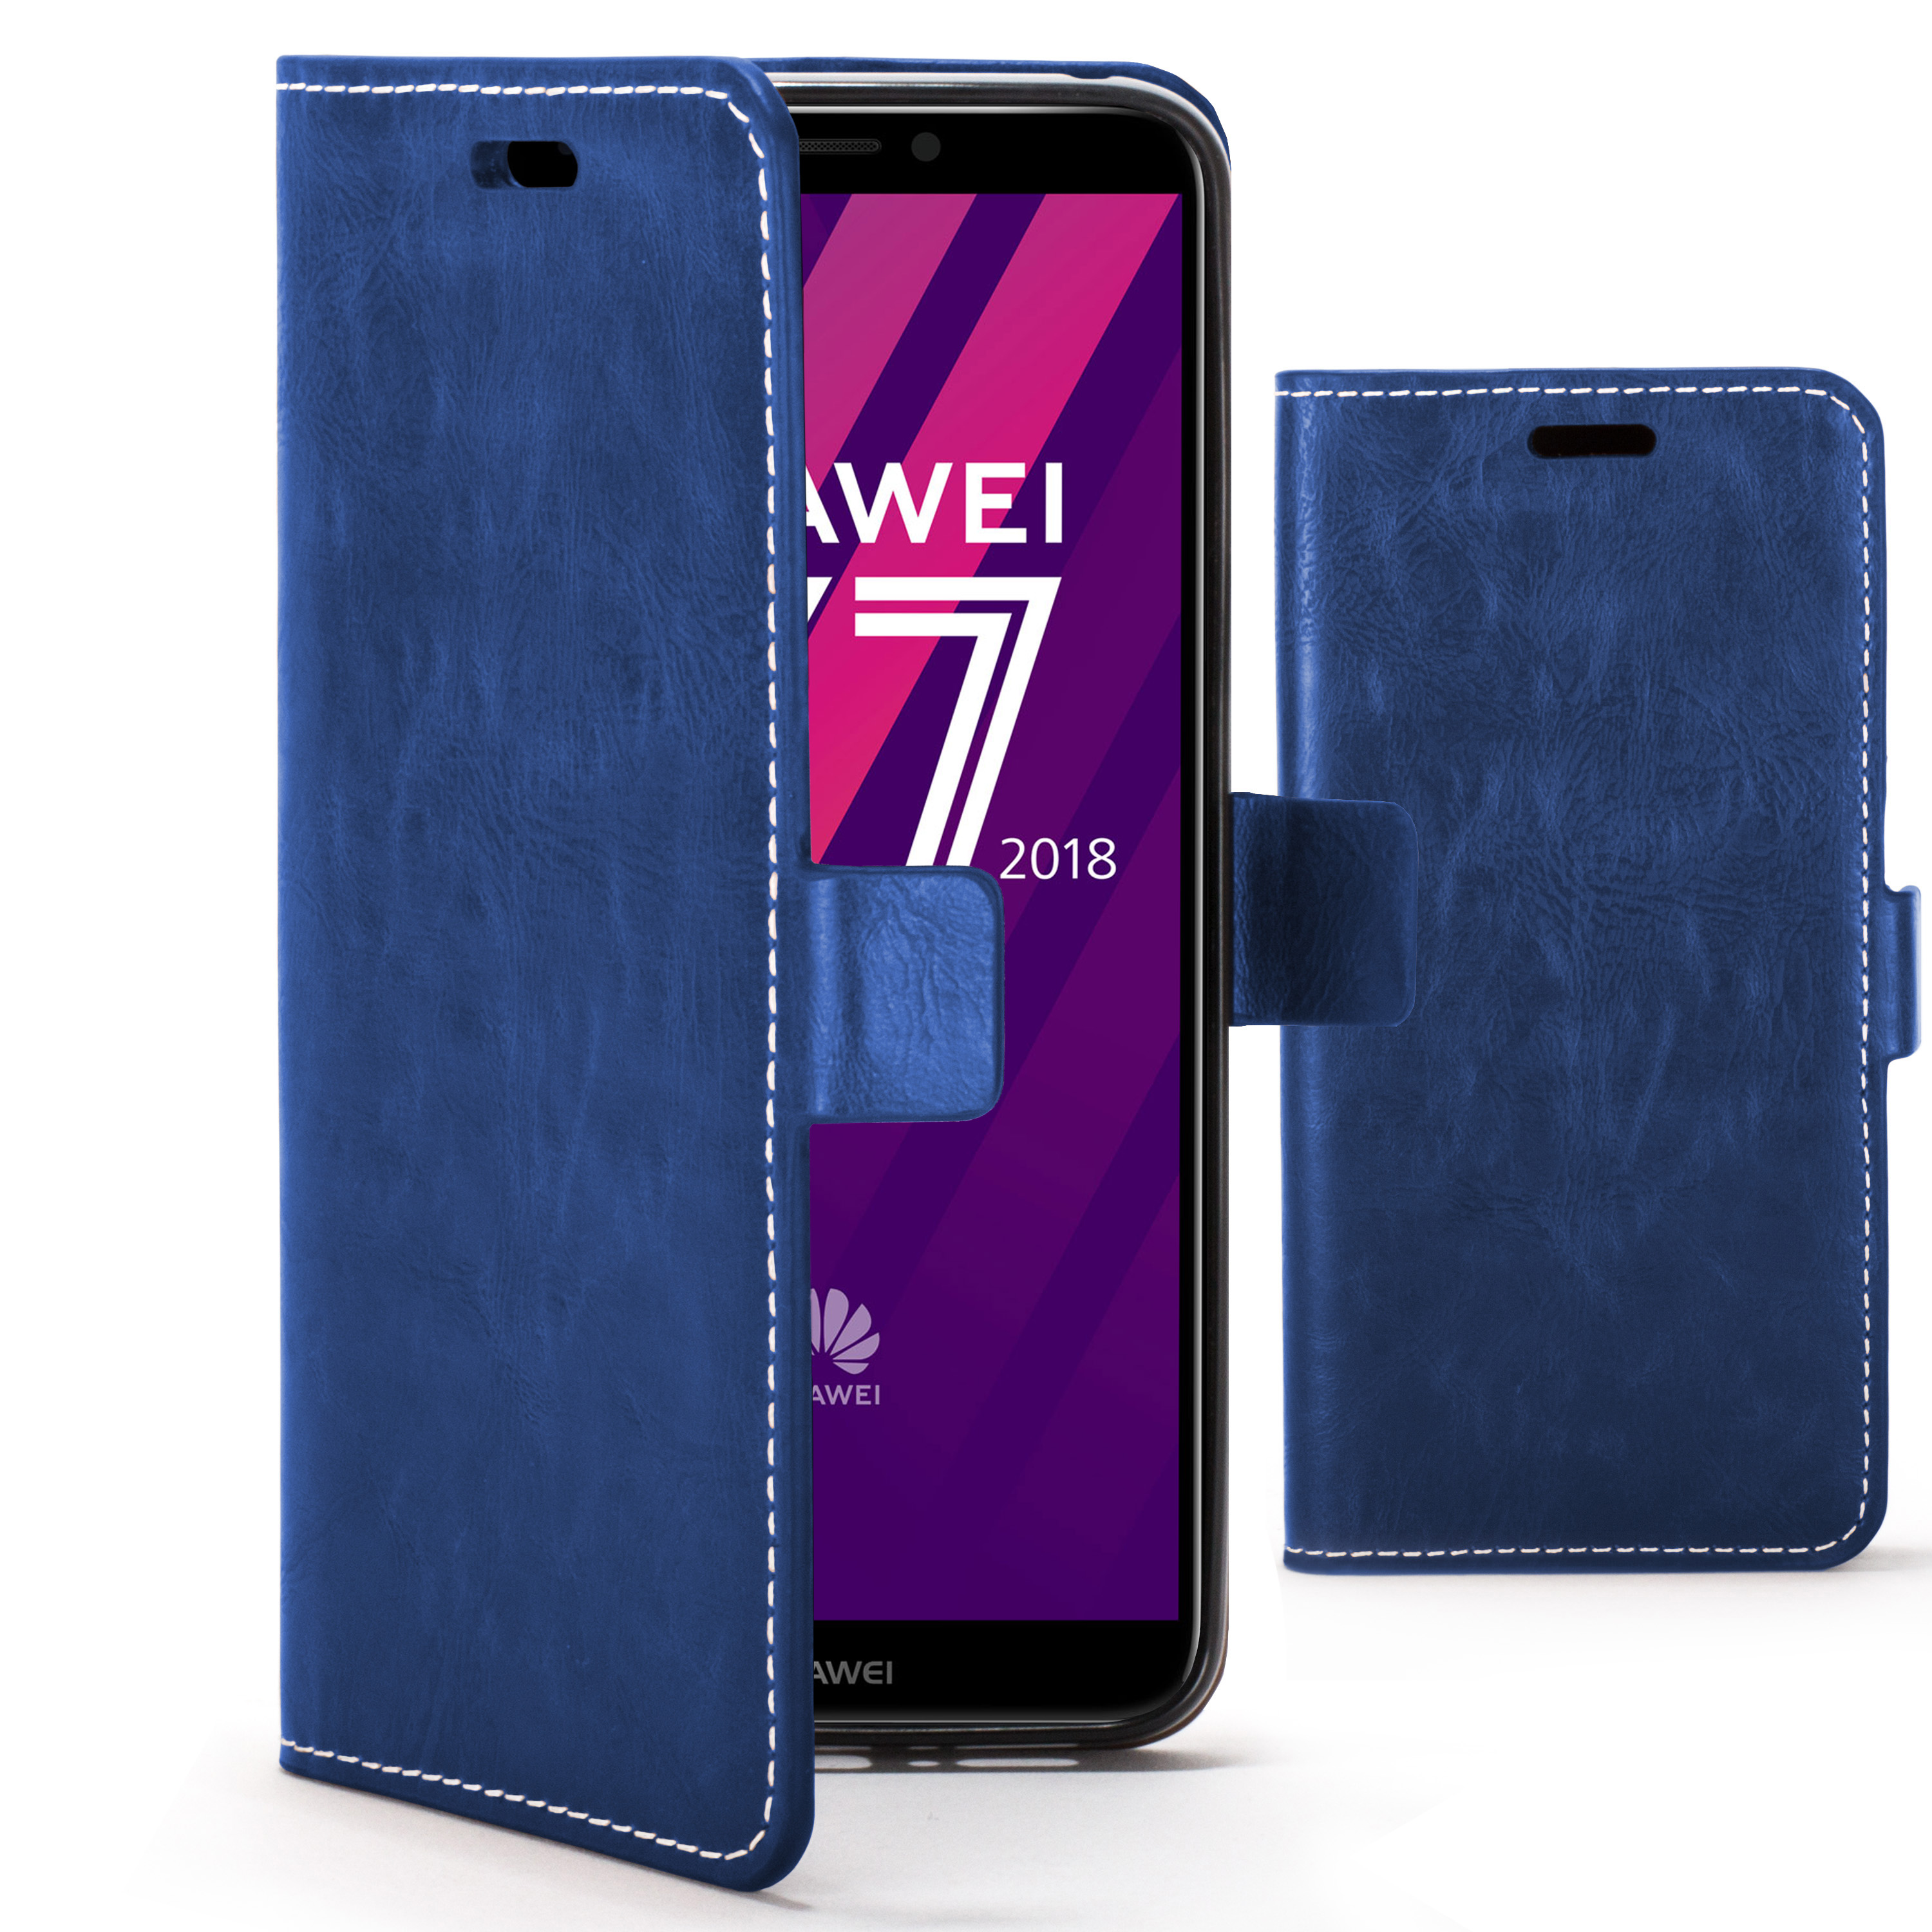 new product 6832c 11d7b Forefront Cases Huawei Y7 Pro / Y7 2018 / Y7 Prime 2018 Premium Handmade PU  Leather Case Cover   Navy Blue